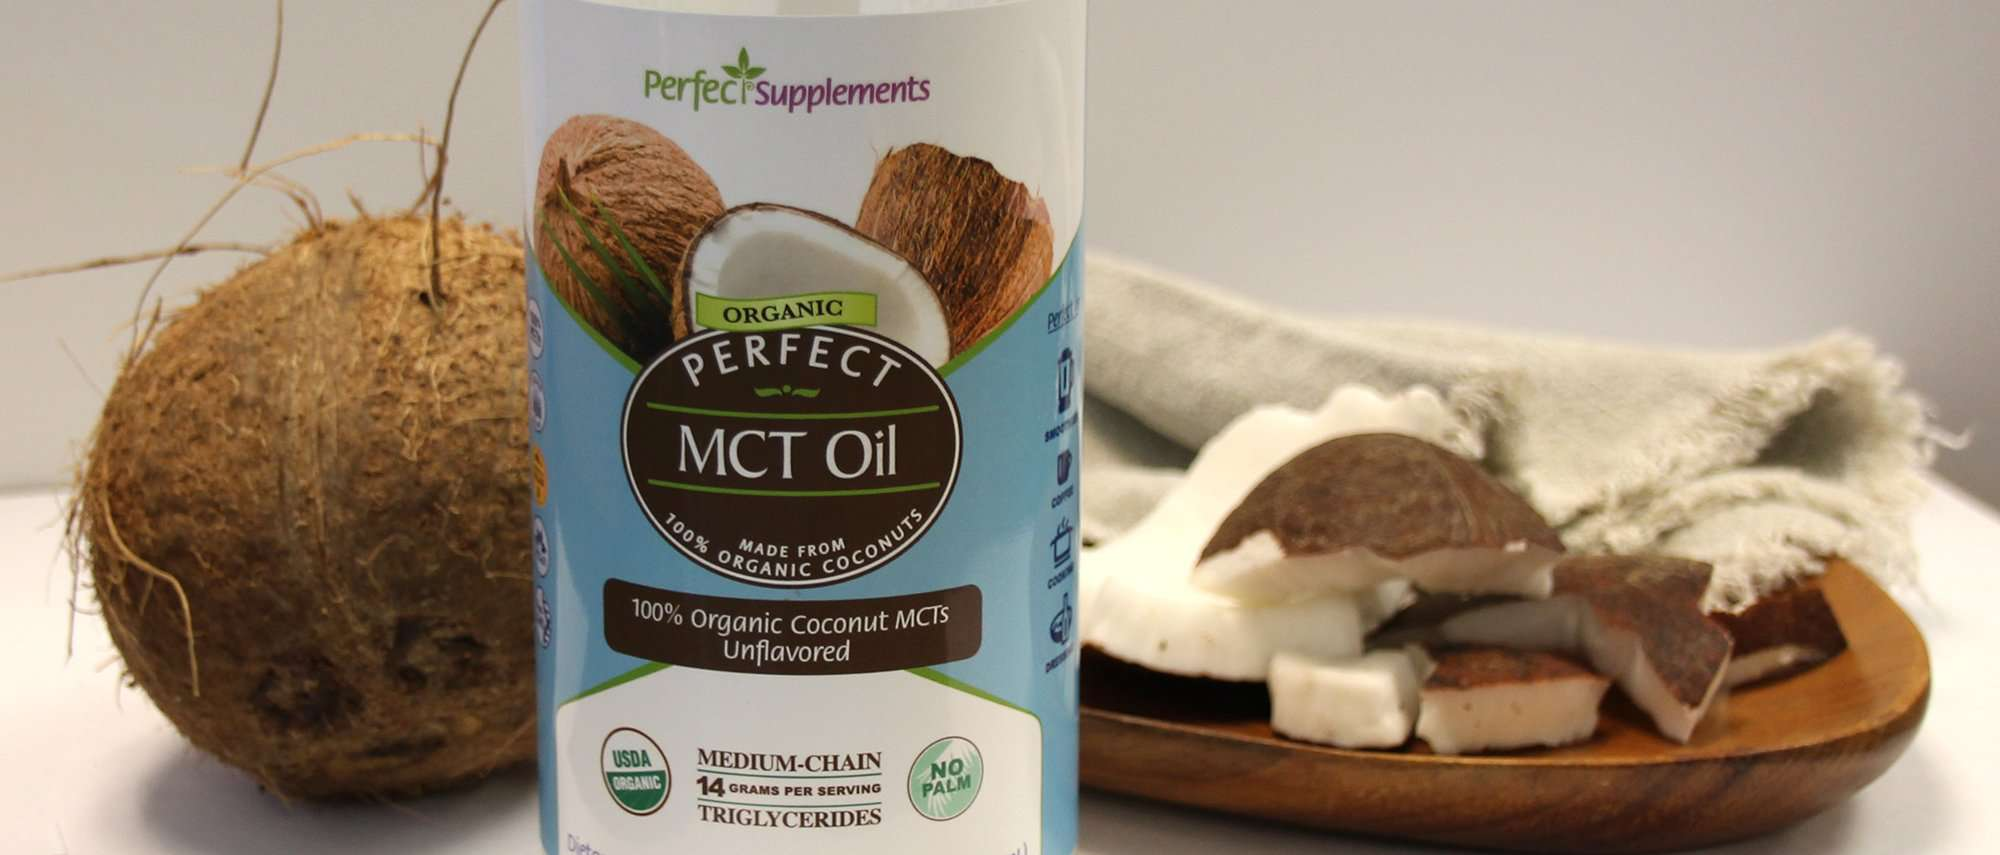 The BEST MCT Oil is from Perfect Supplements